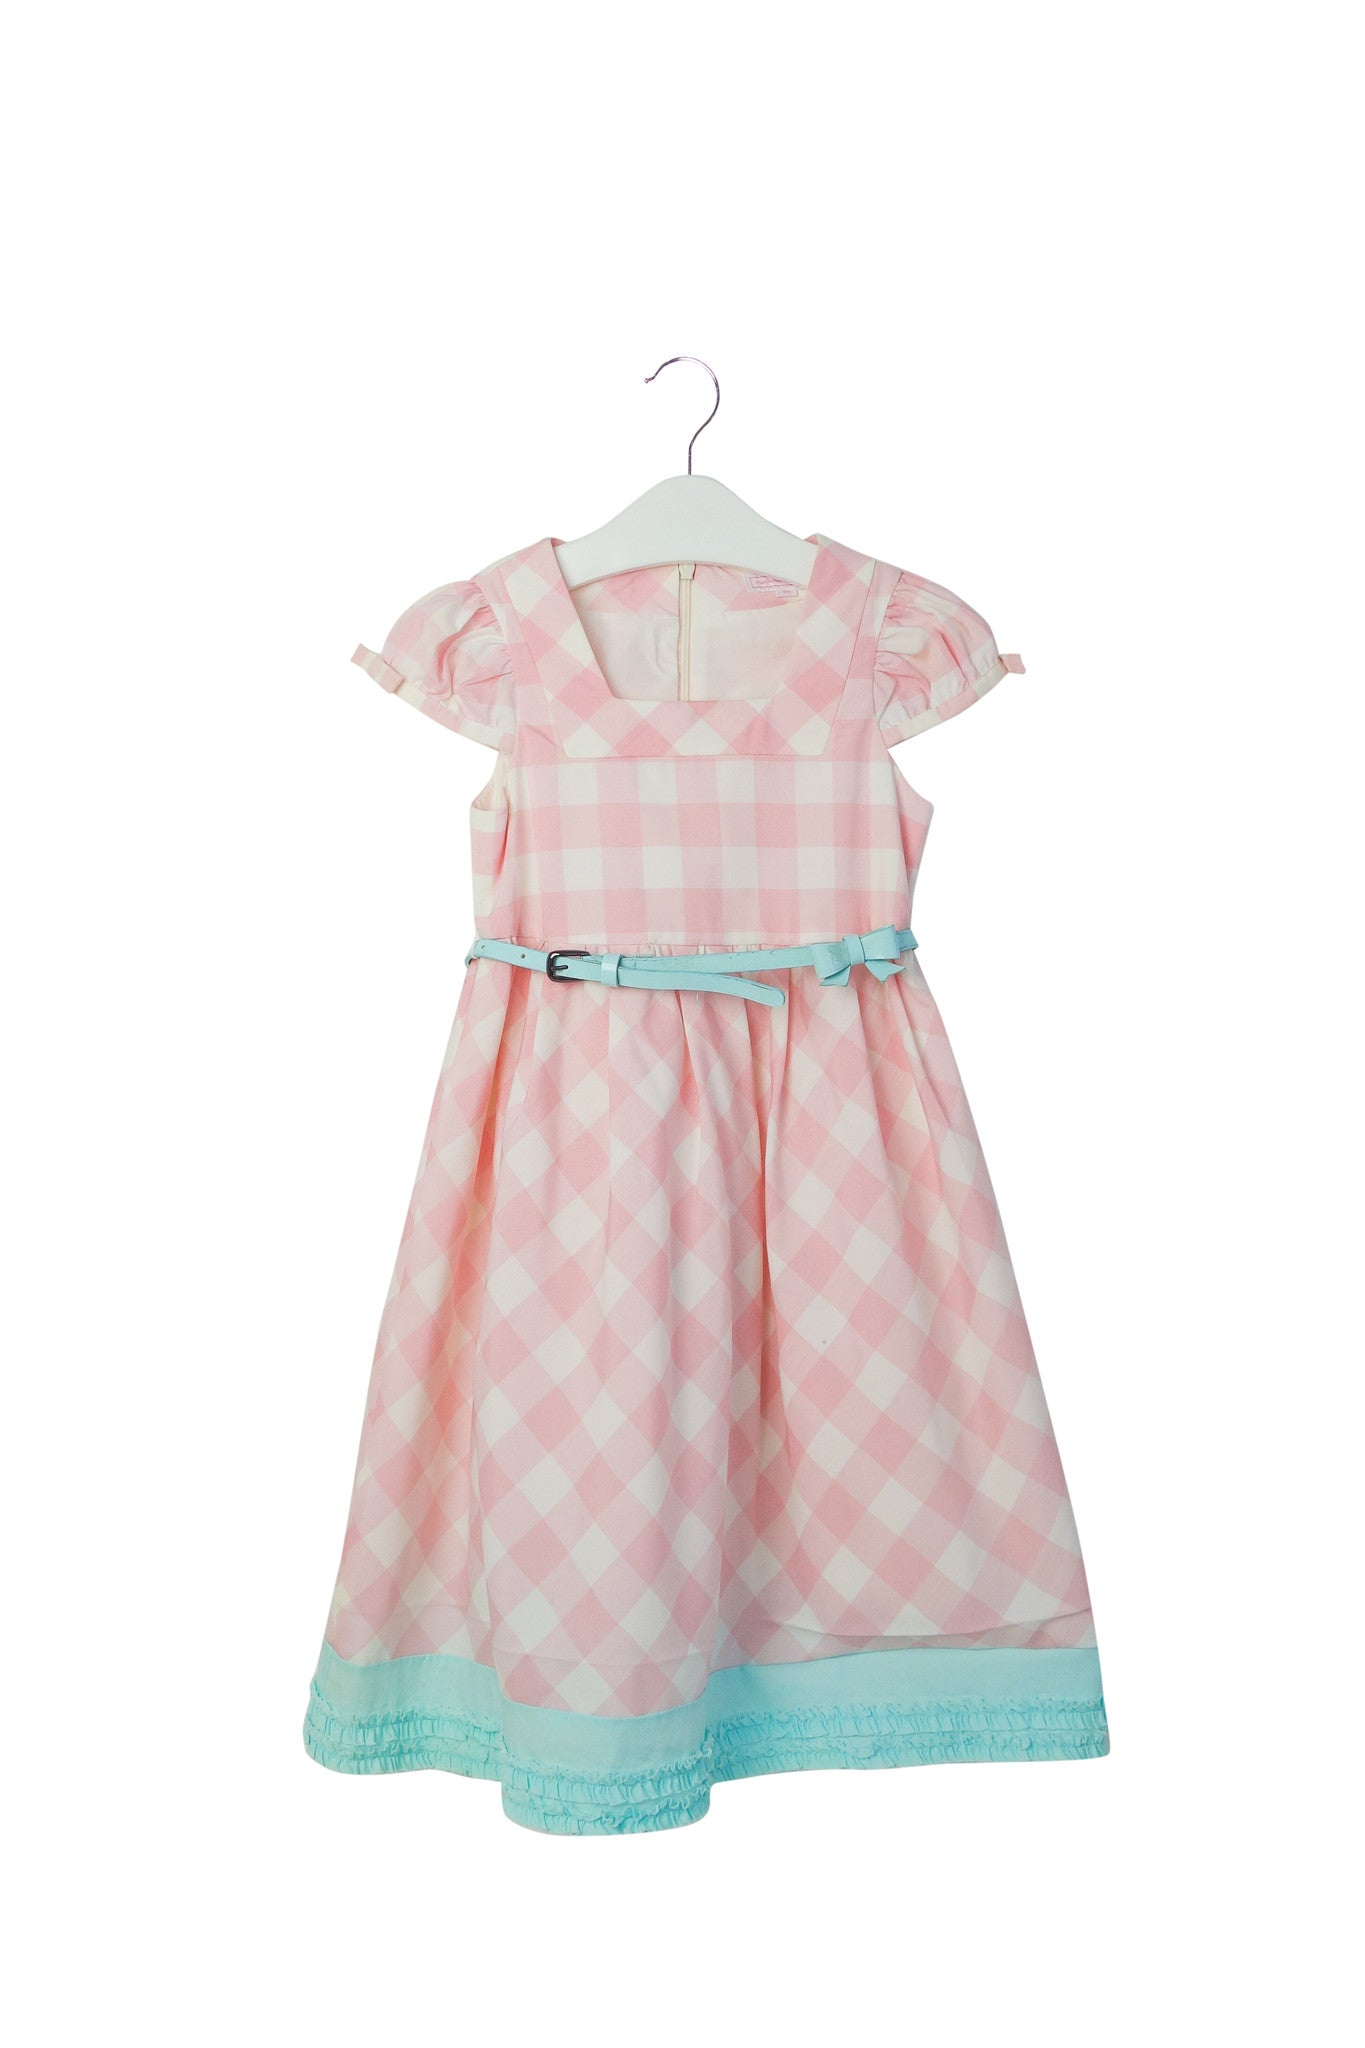 10003174 Nicholas & Bears Kids~Dress 3T at Retykle